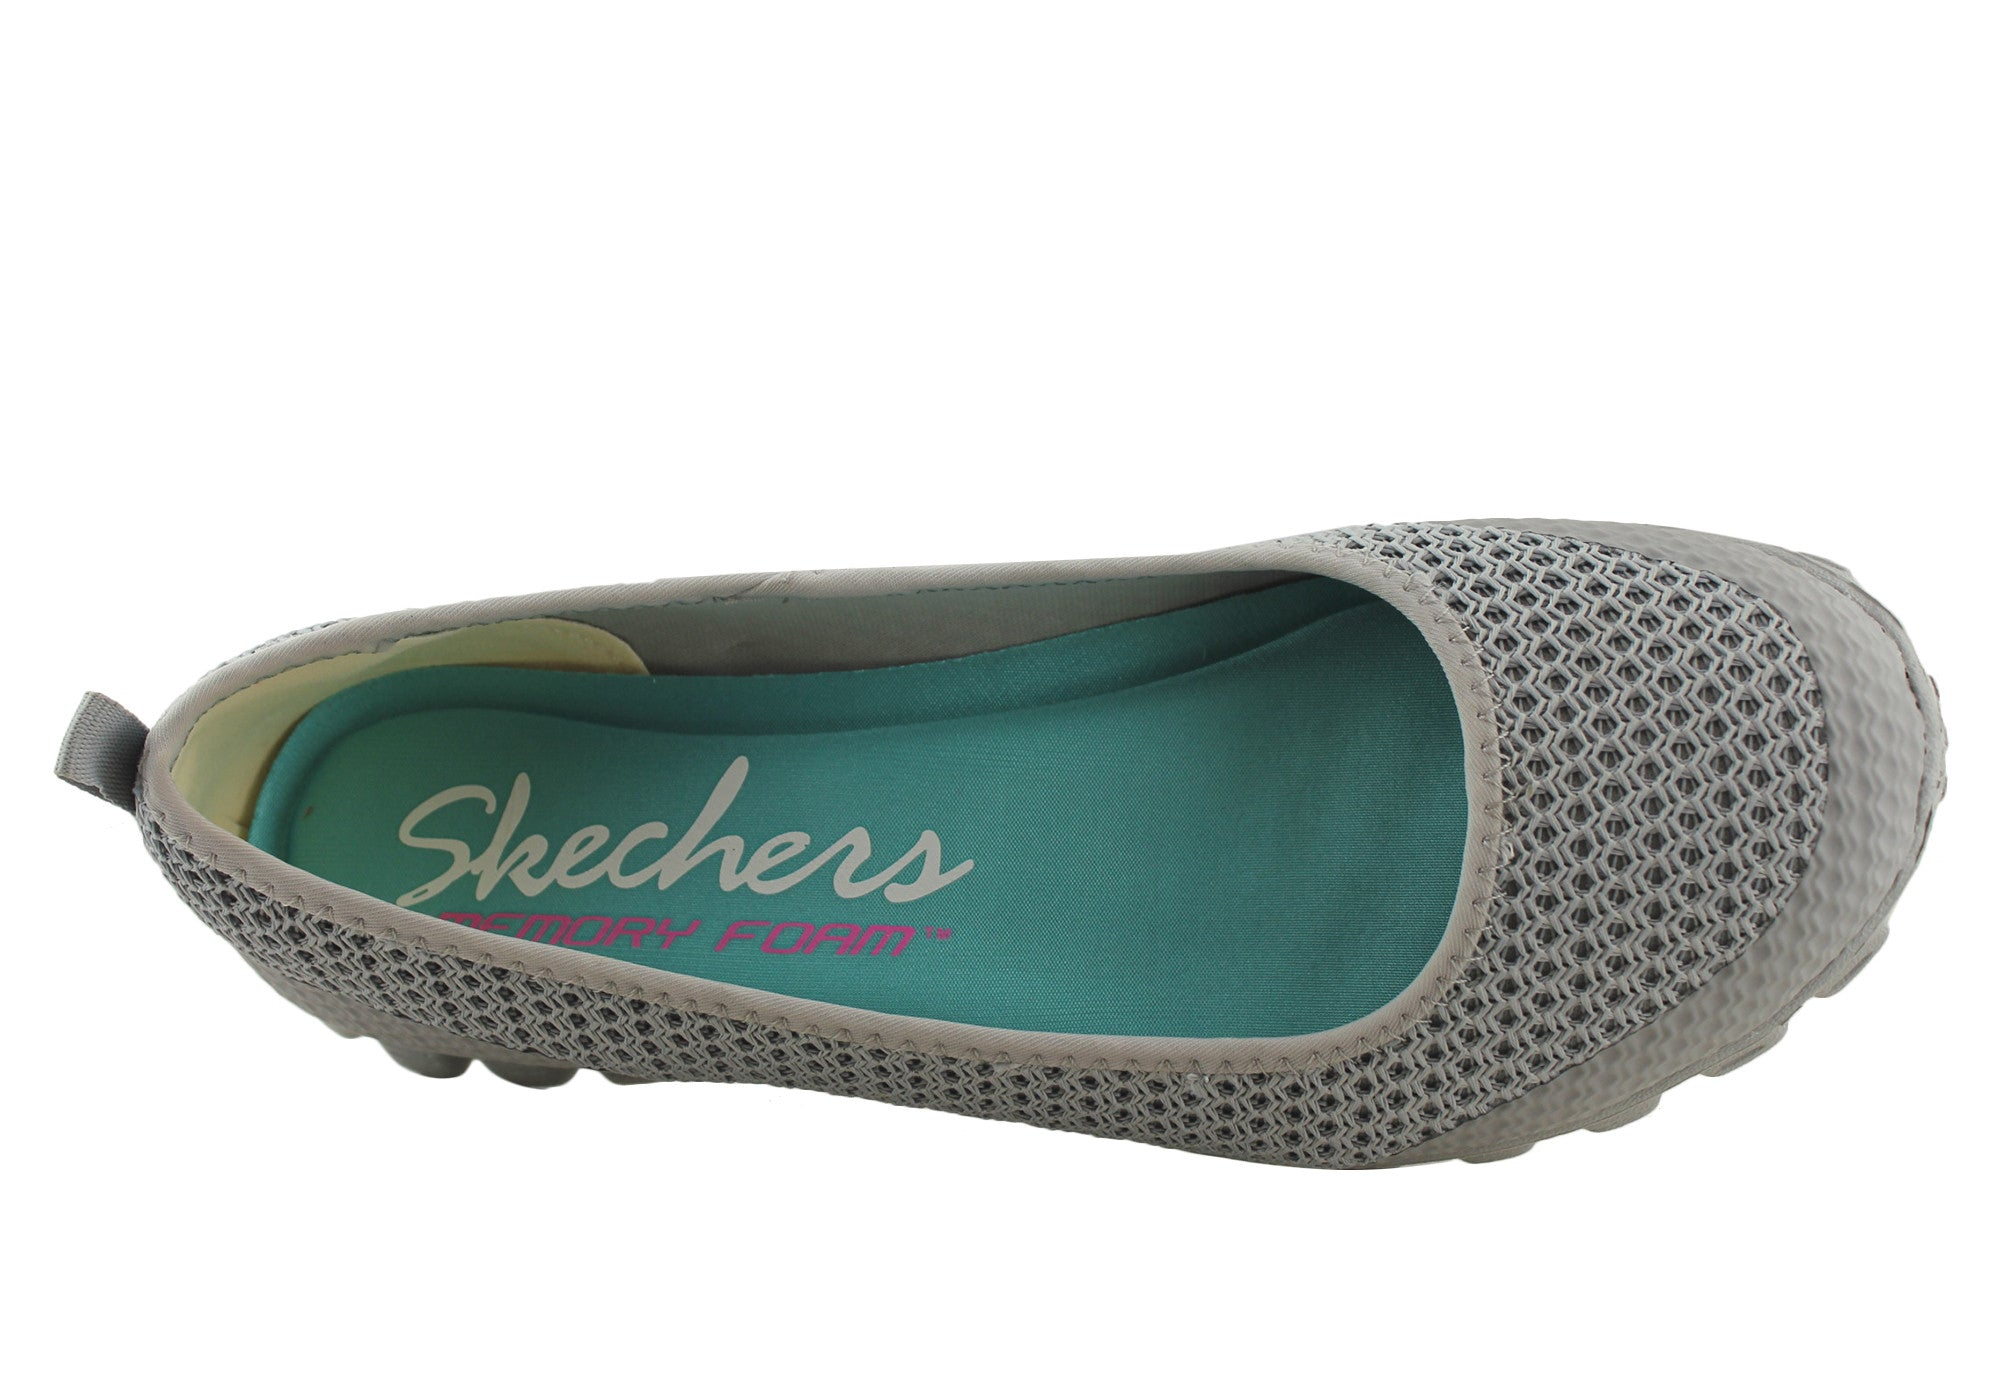 Skechers Ez Flex 2 Sweet & Chic Womens Casual Shoes